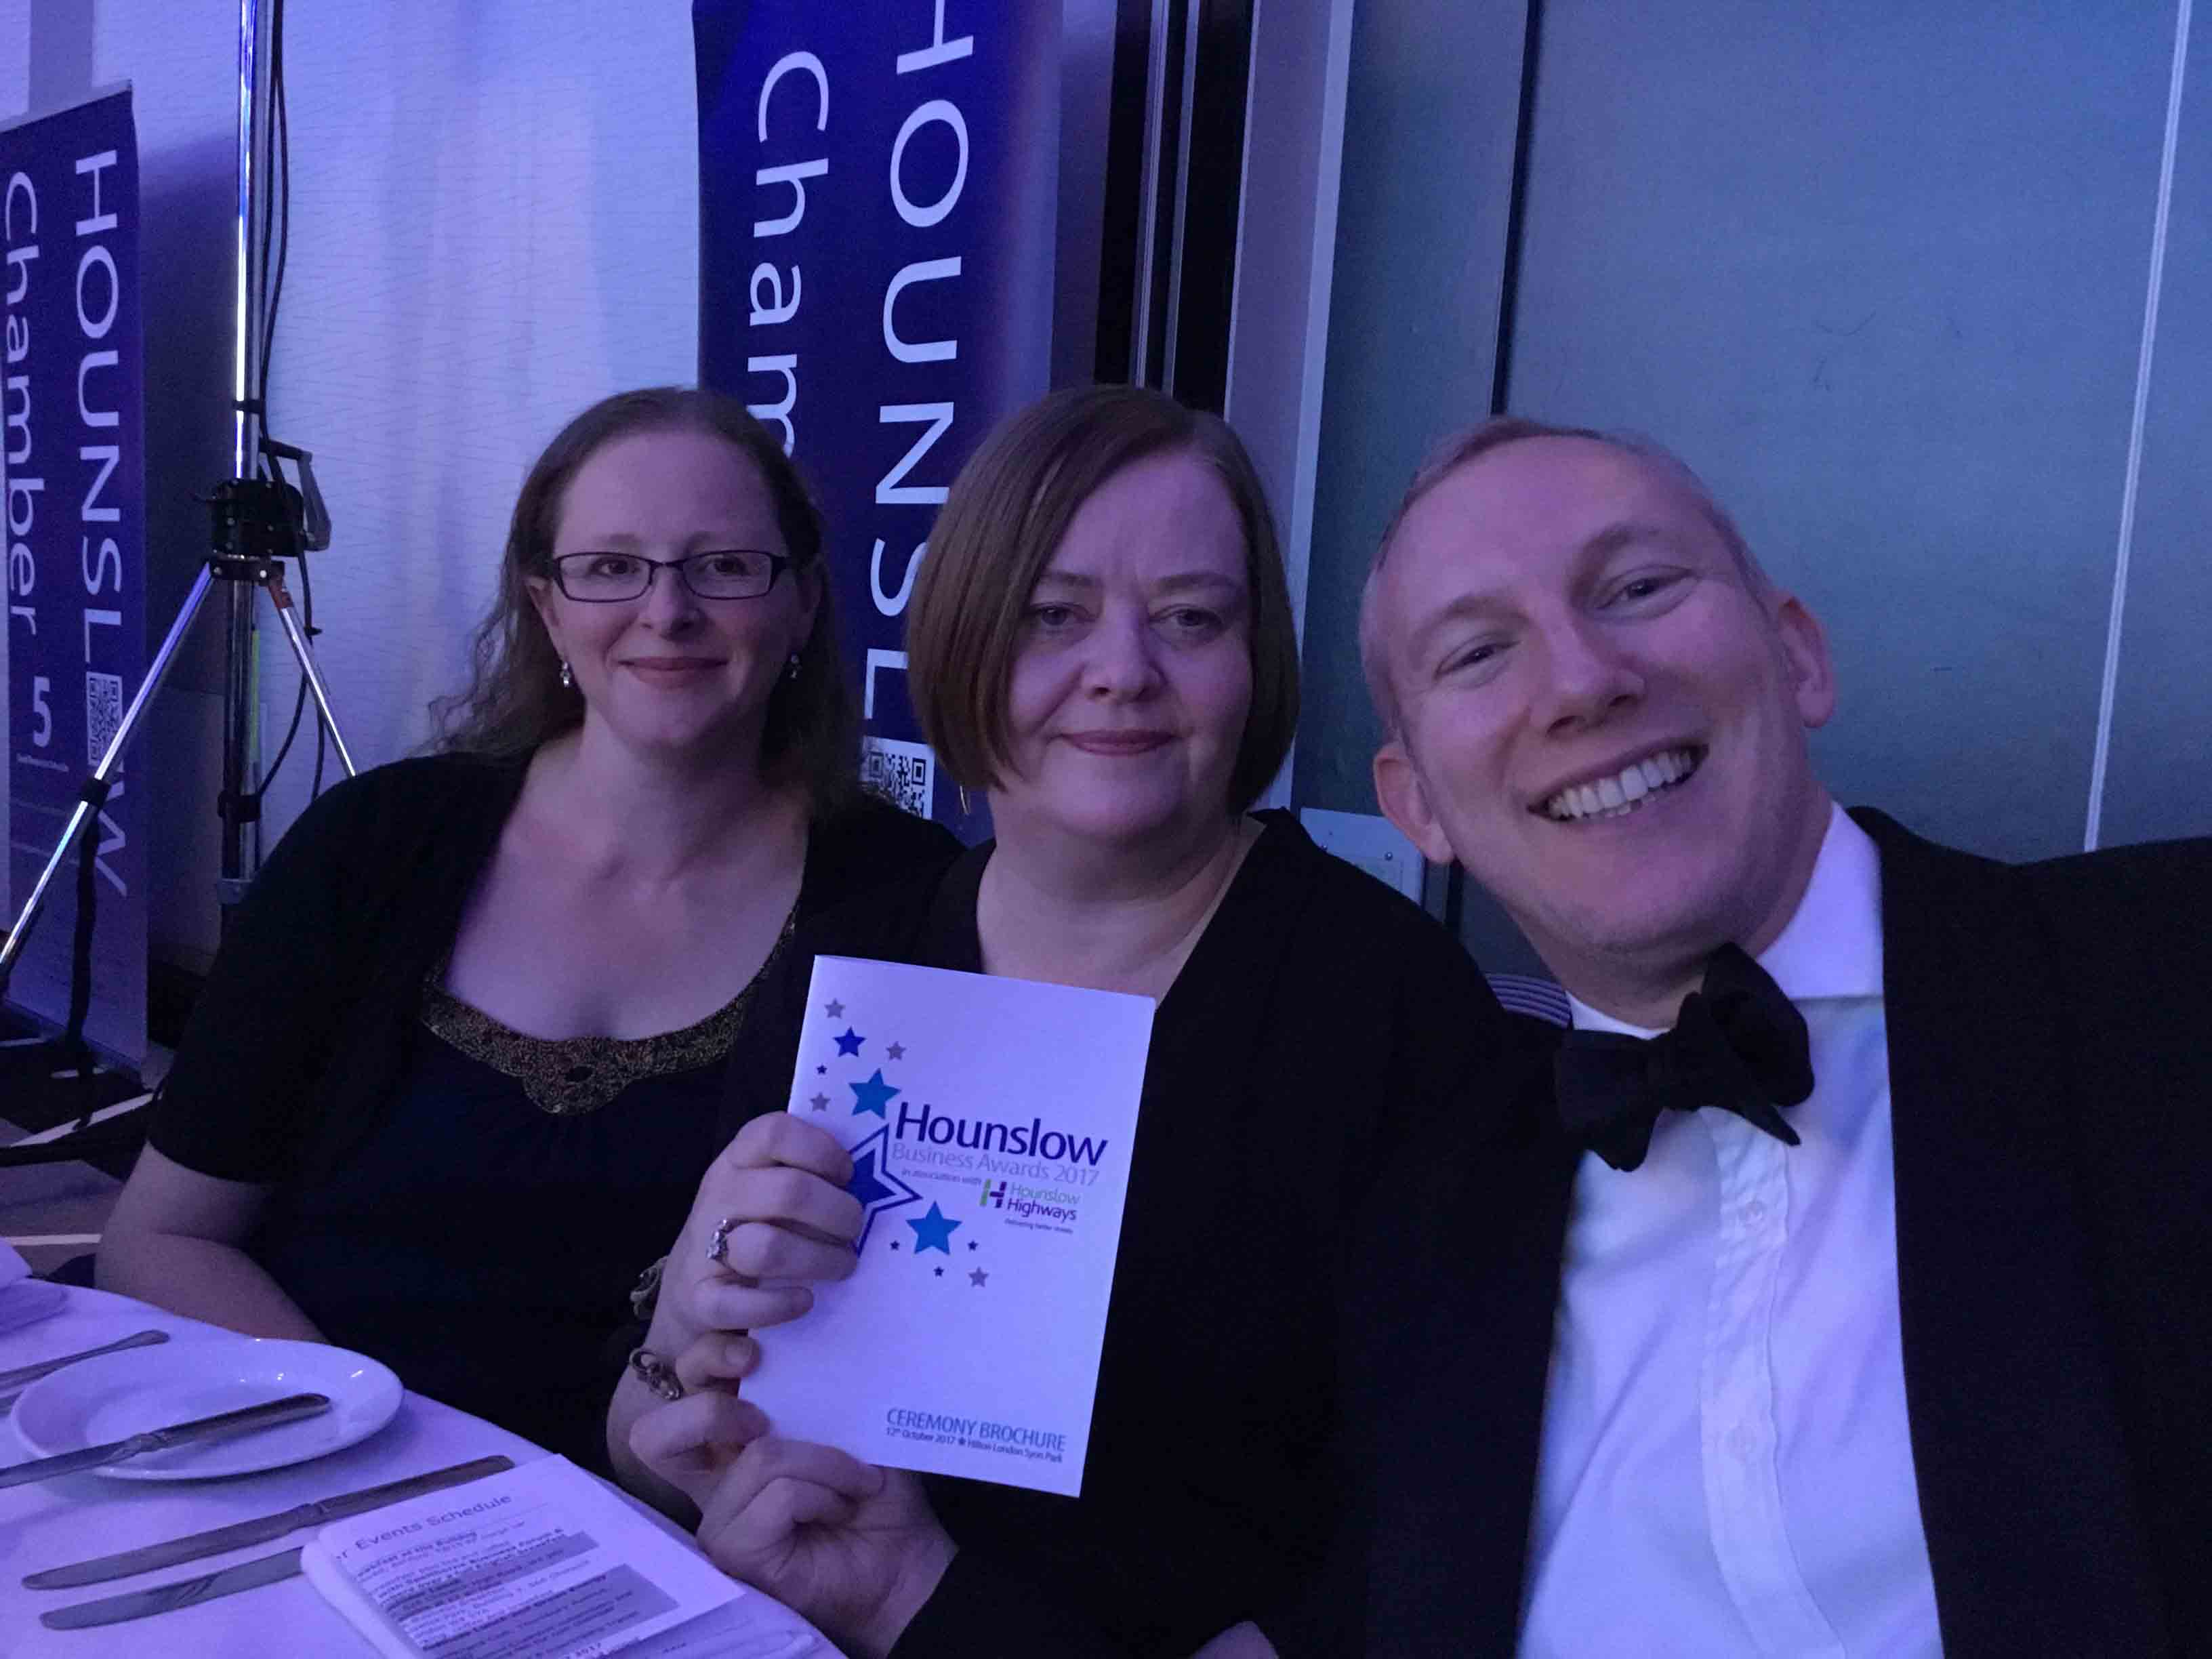 Matt Campion, Pam Sedgwick and Alice Careless at Hounslow Business Awards